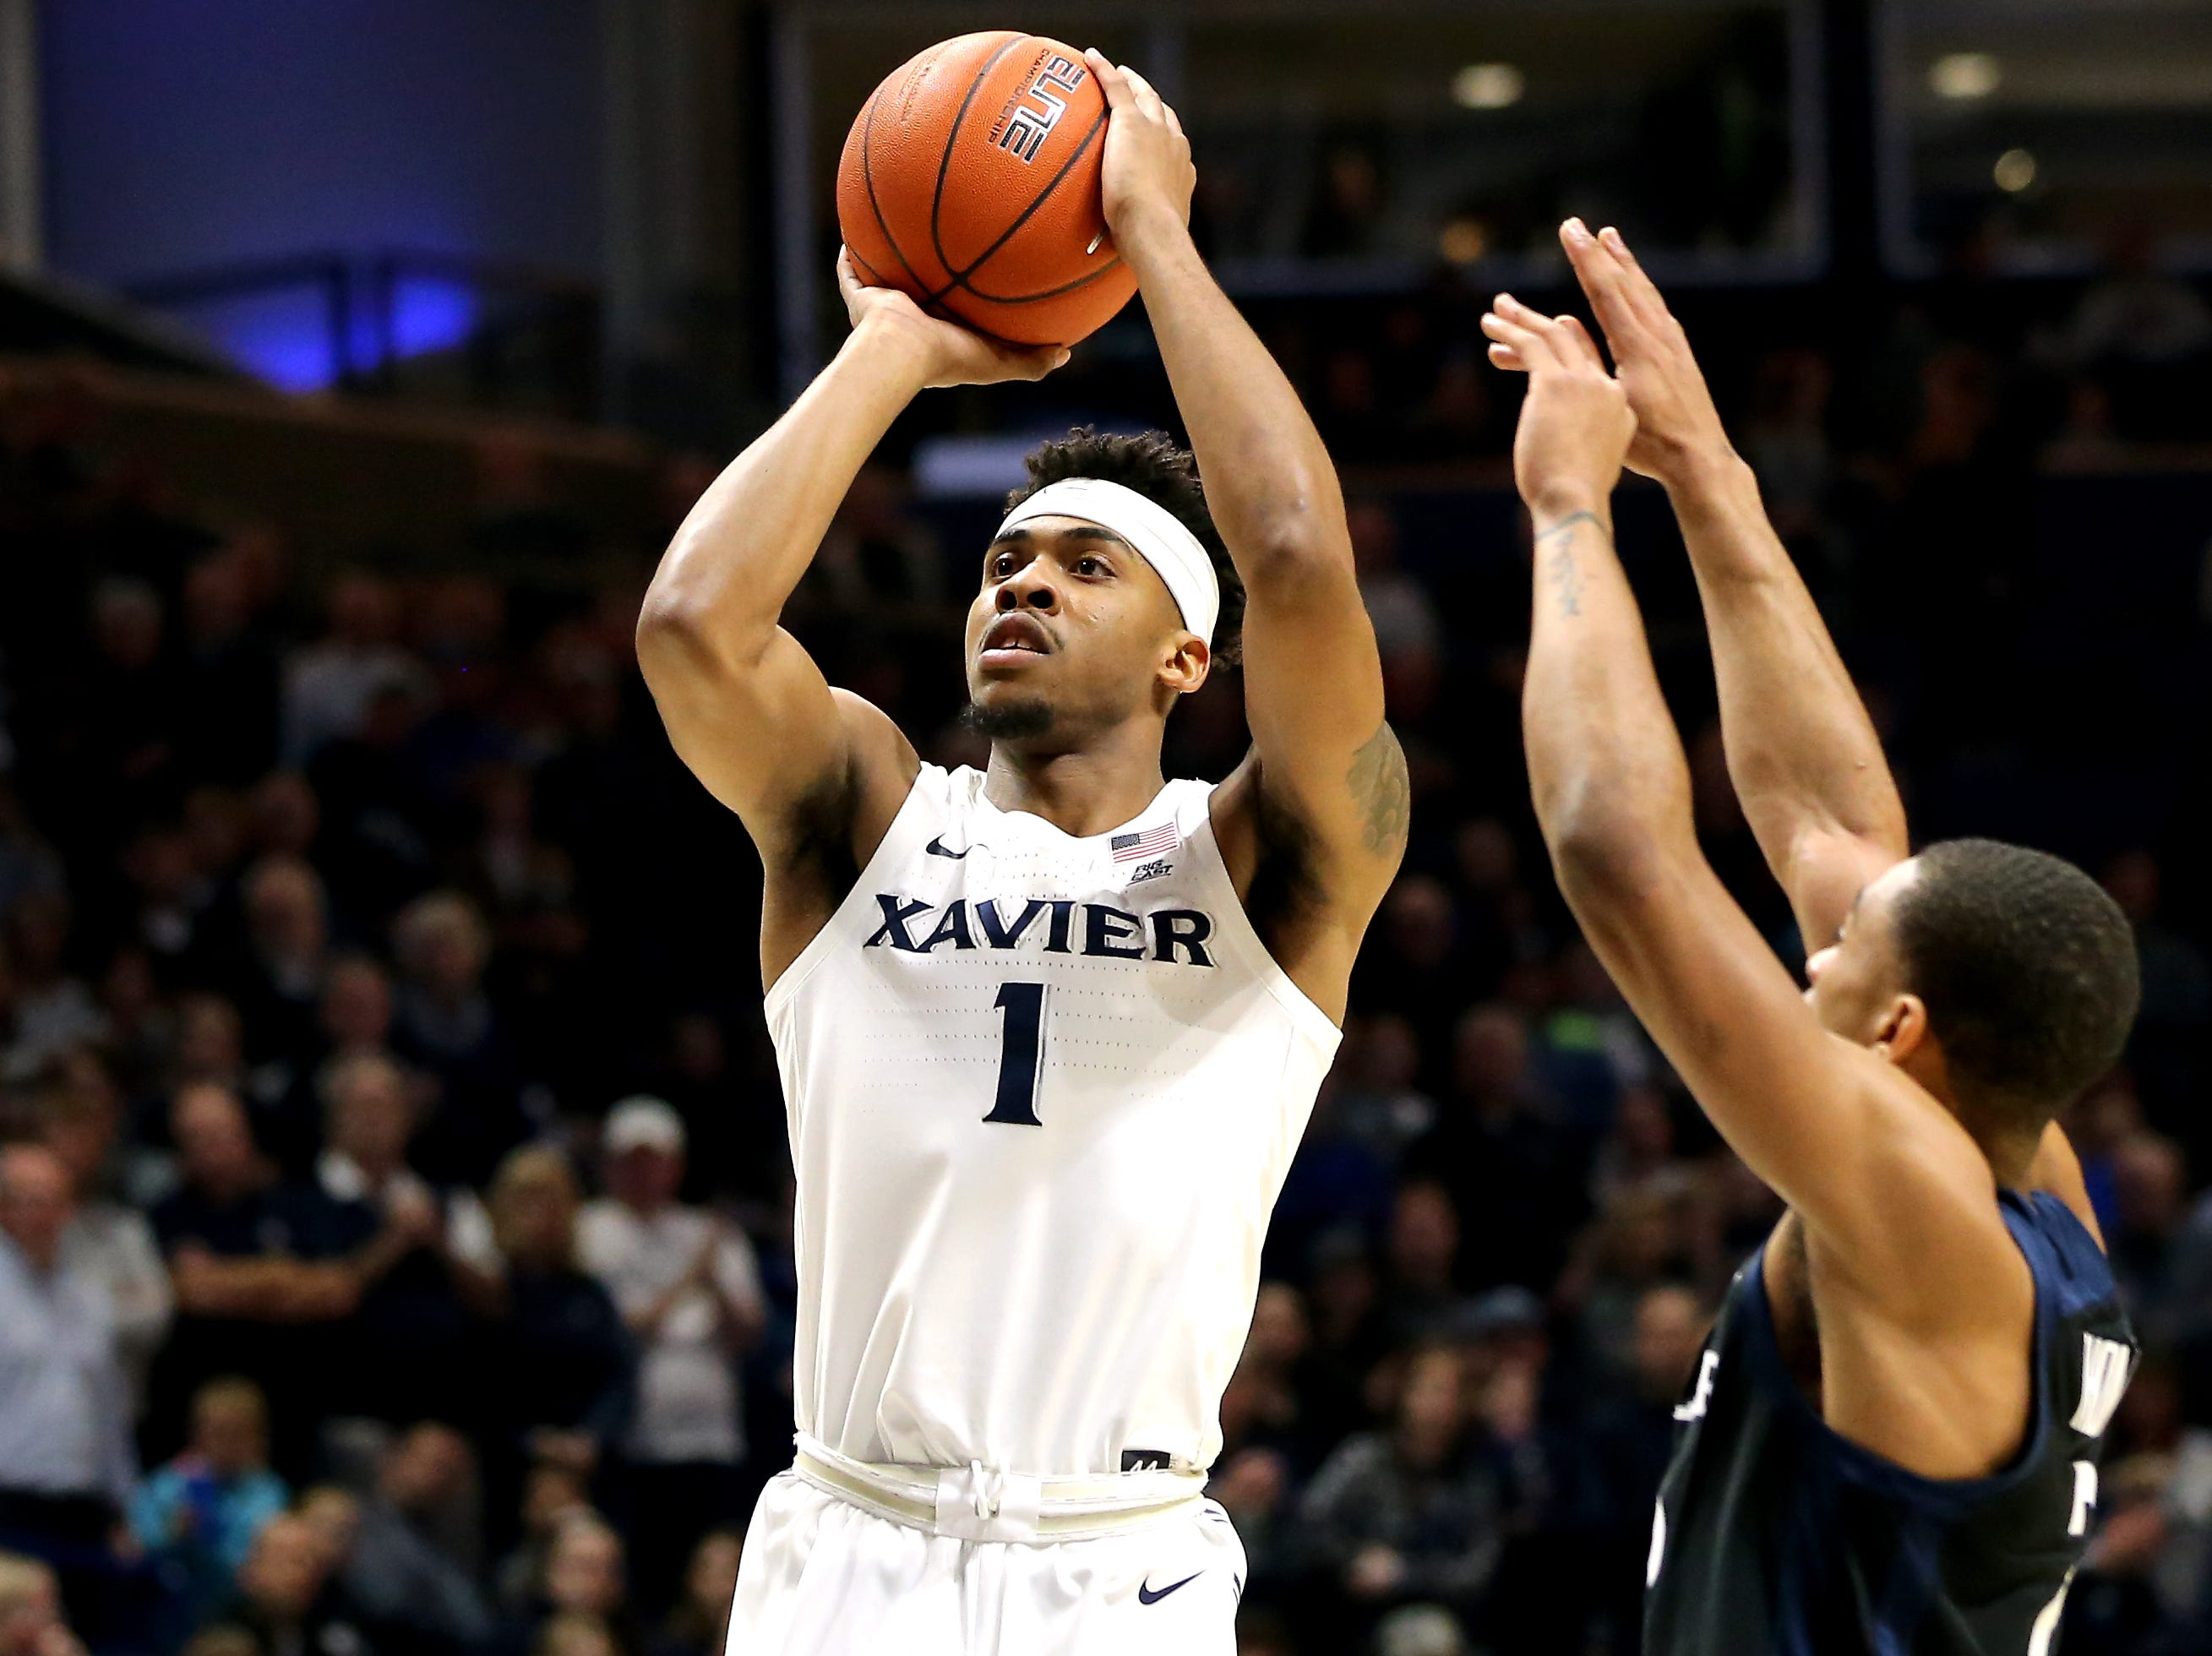 Xavier Musketeers guard Paul Scruggs (1) rises for a shot as Butler Bulldogs guard Aaron Thompson (2) defends in the first half of an NCAA college basketball game, Sunday, Jan. 13, 2019, at Cintas Center in Cincinnati.